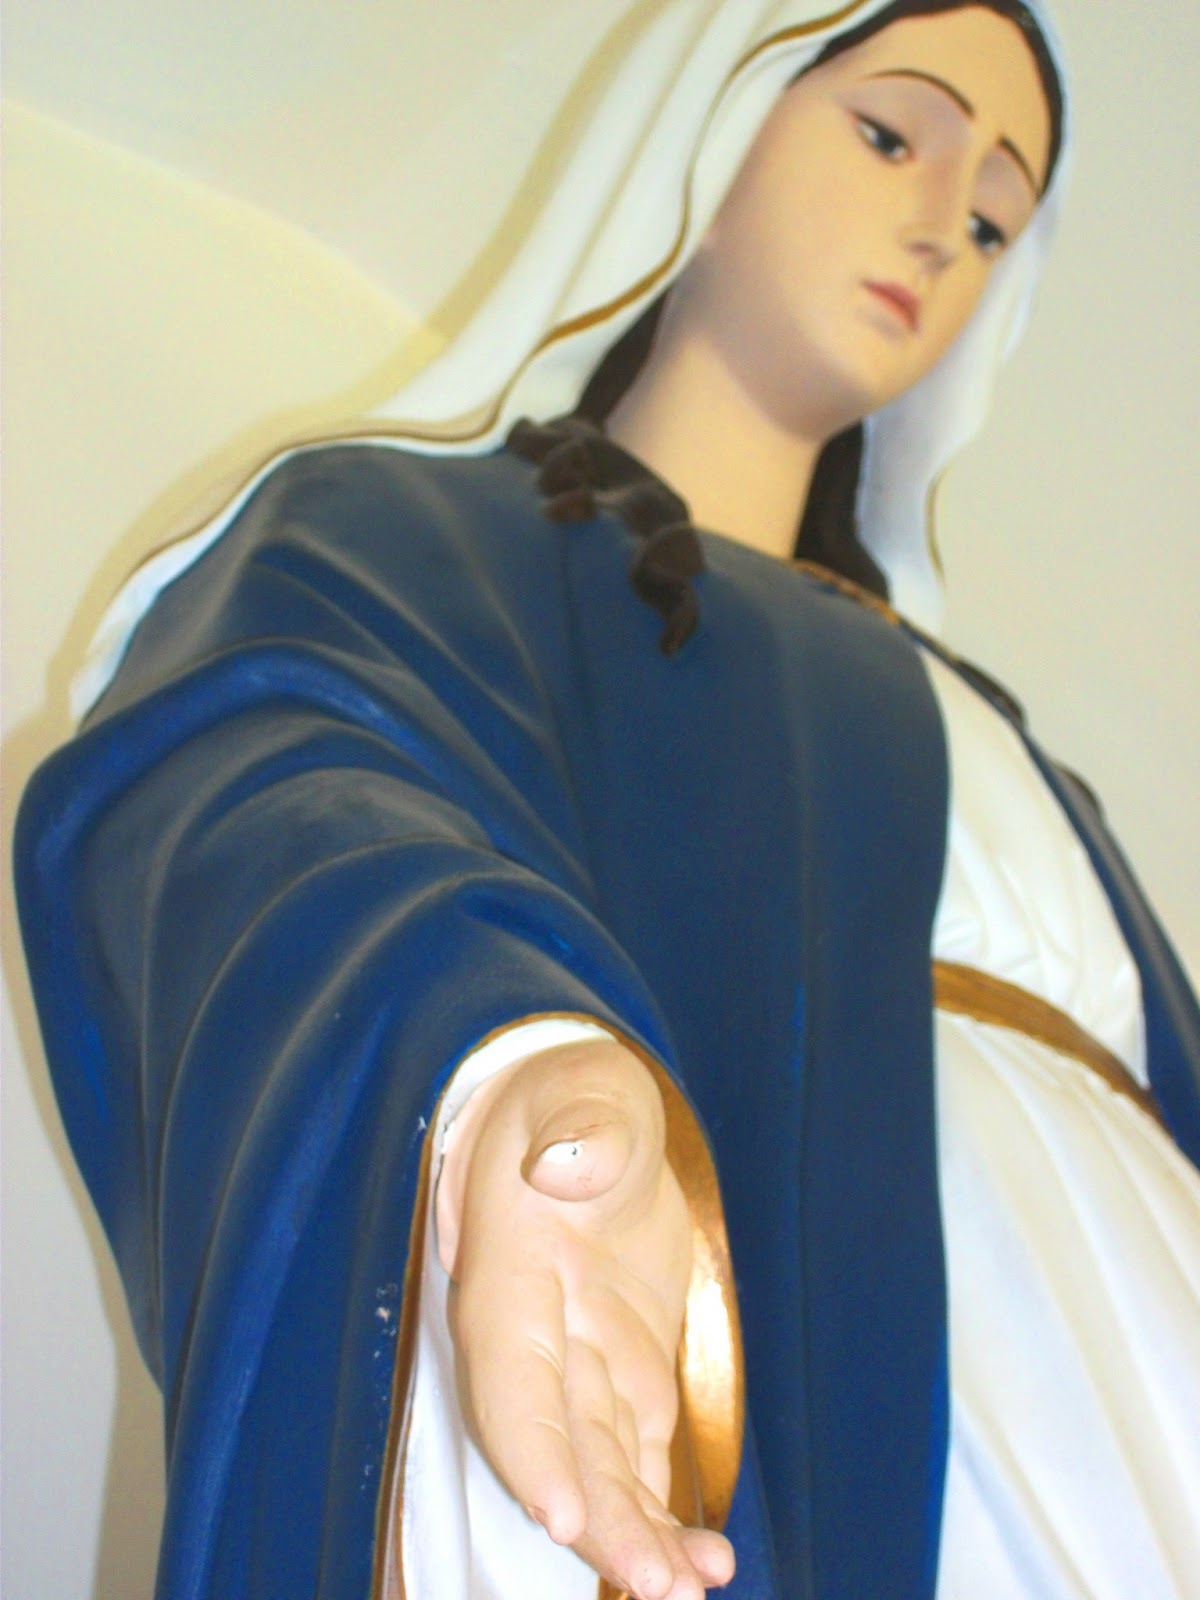 Dom Donald's Blog: That Mary reigns from Heaven intimately ...